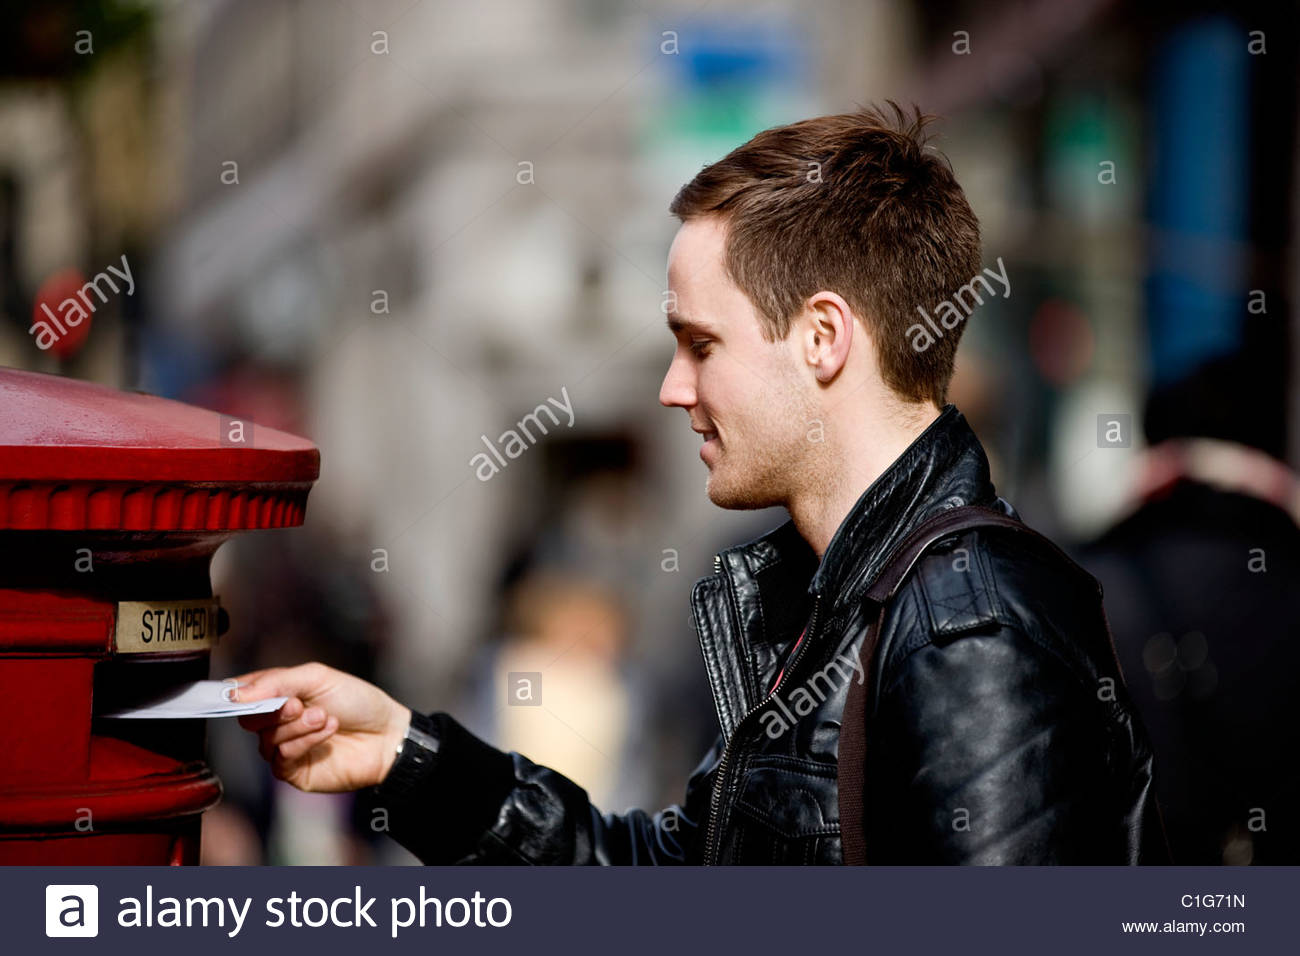 A man posting letters in a letterbox Stock Photo